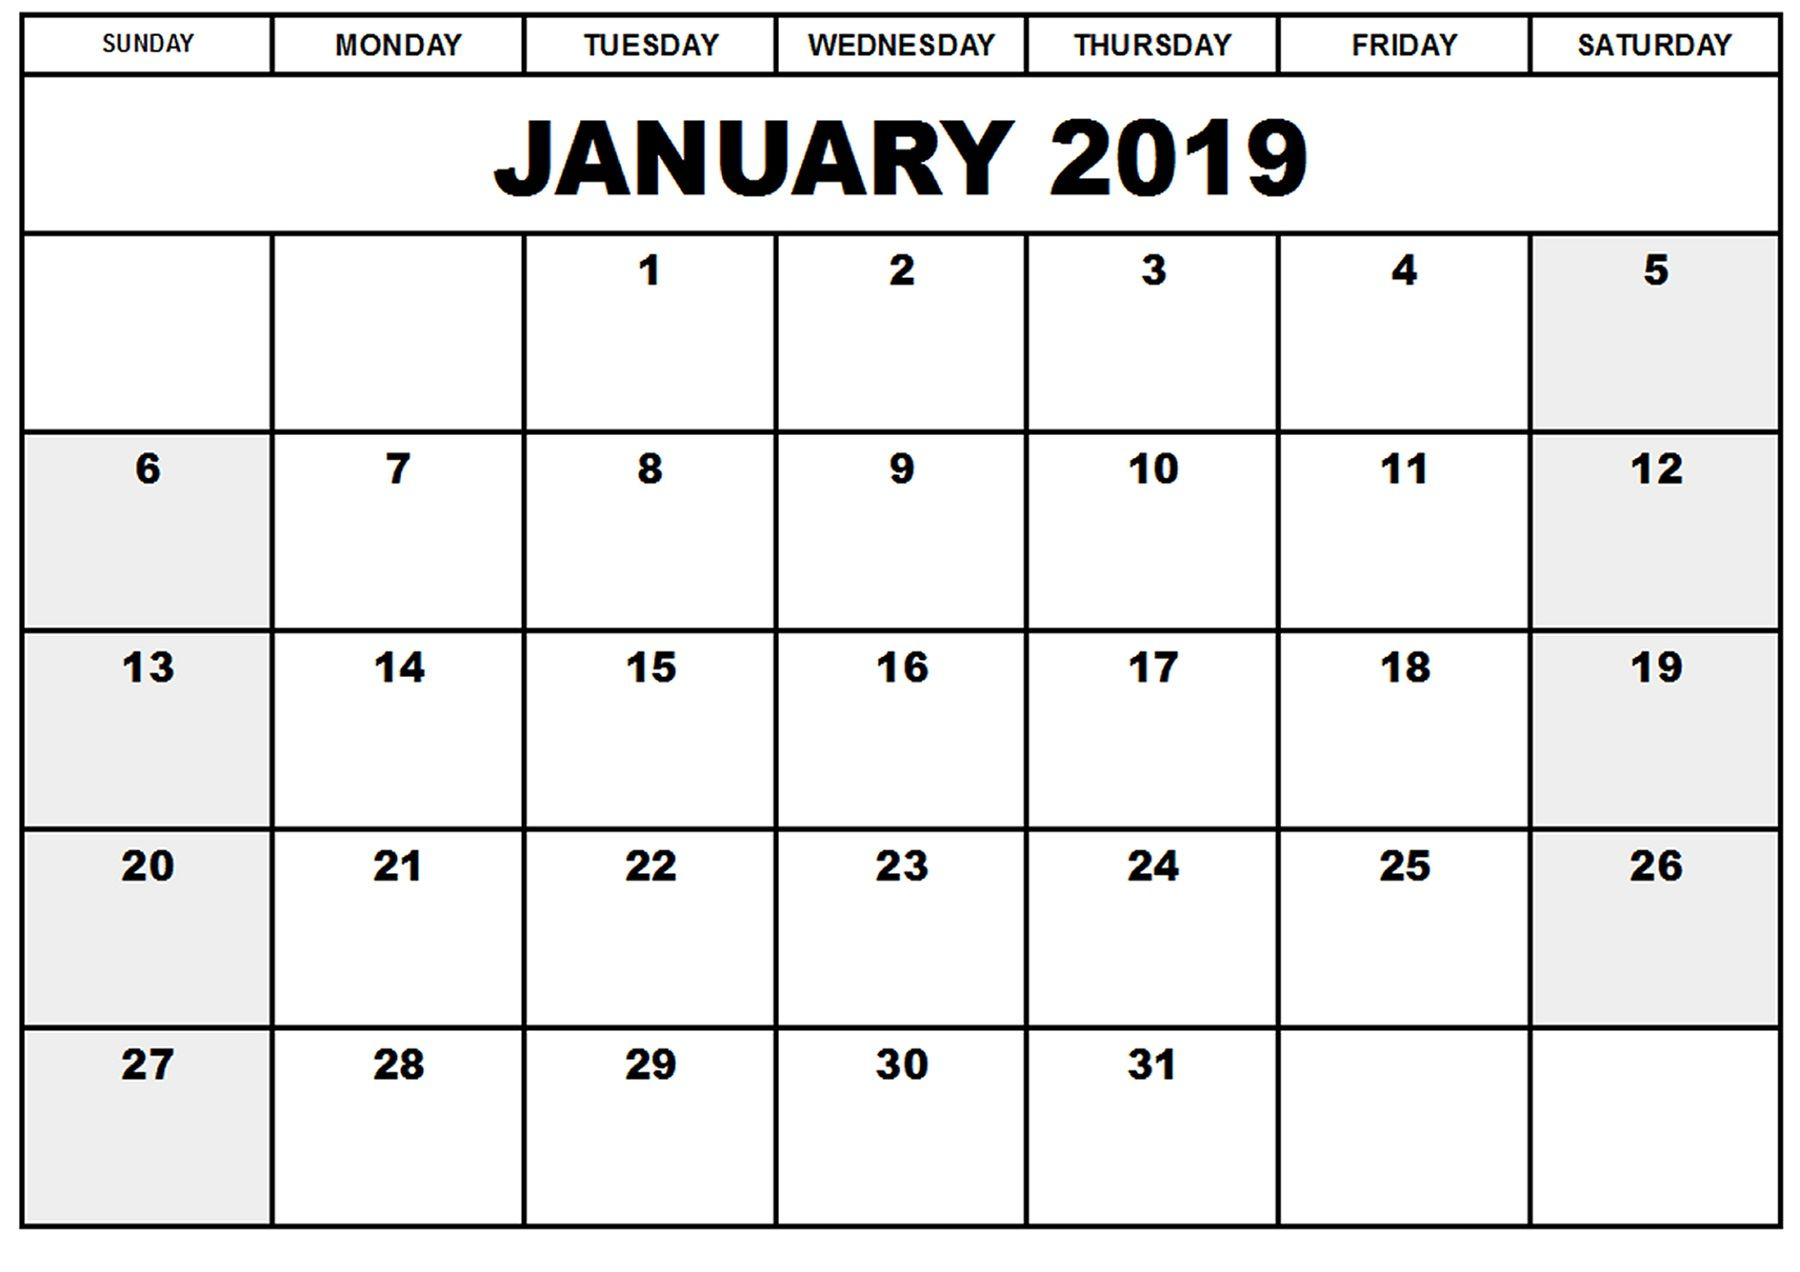 Print Online Calendar 2019 regarding Waterproof Calendar January 2020